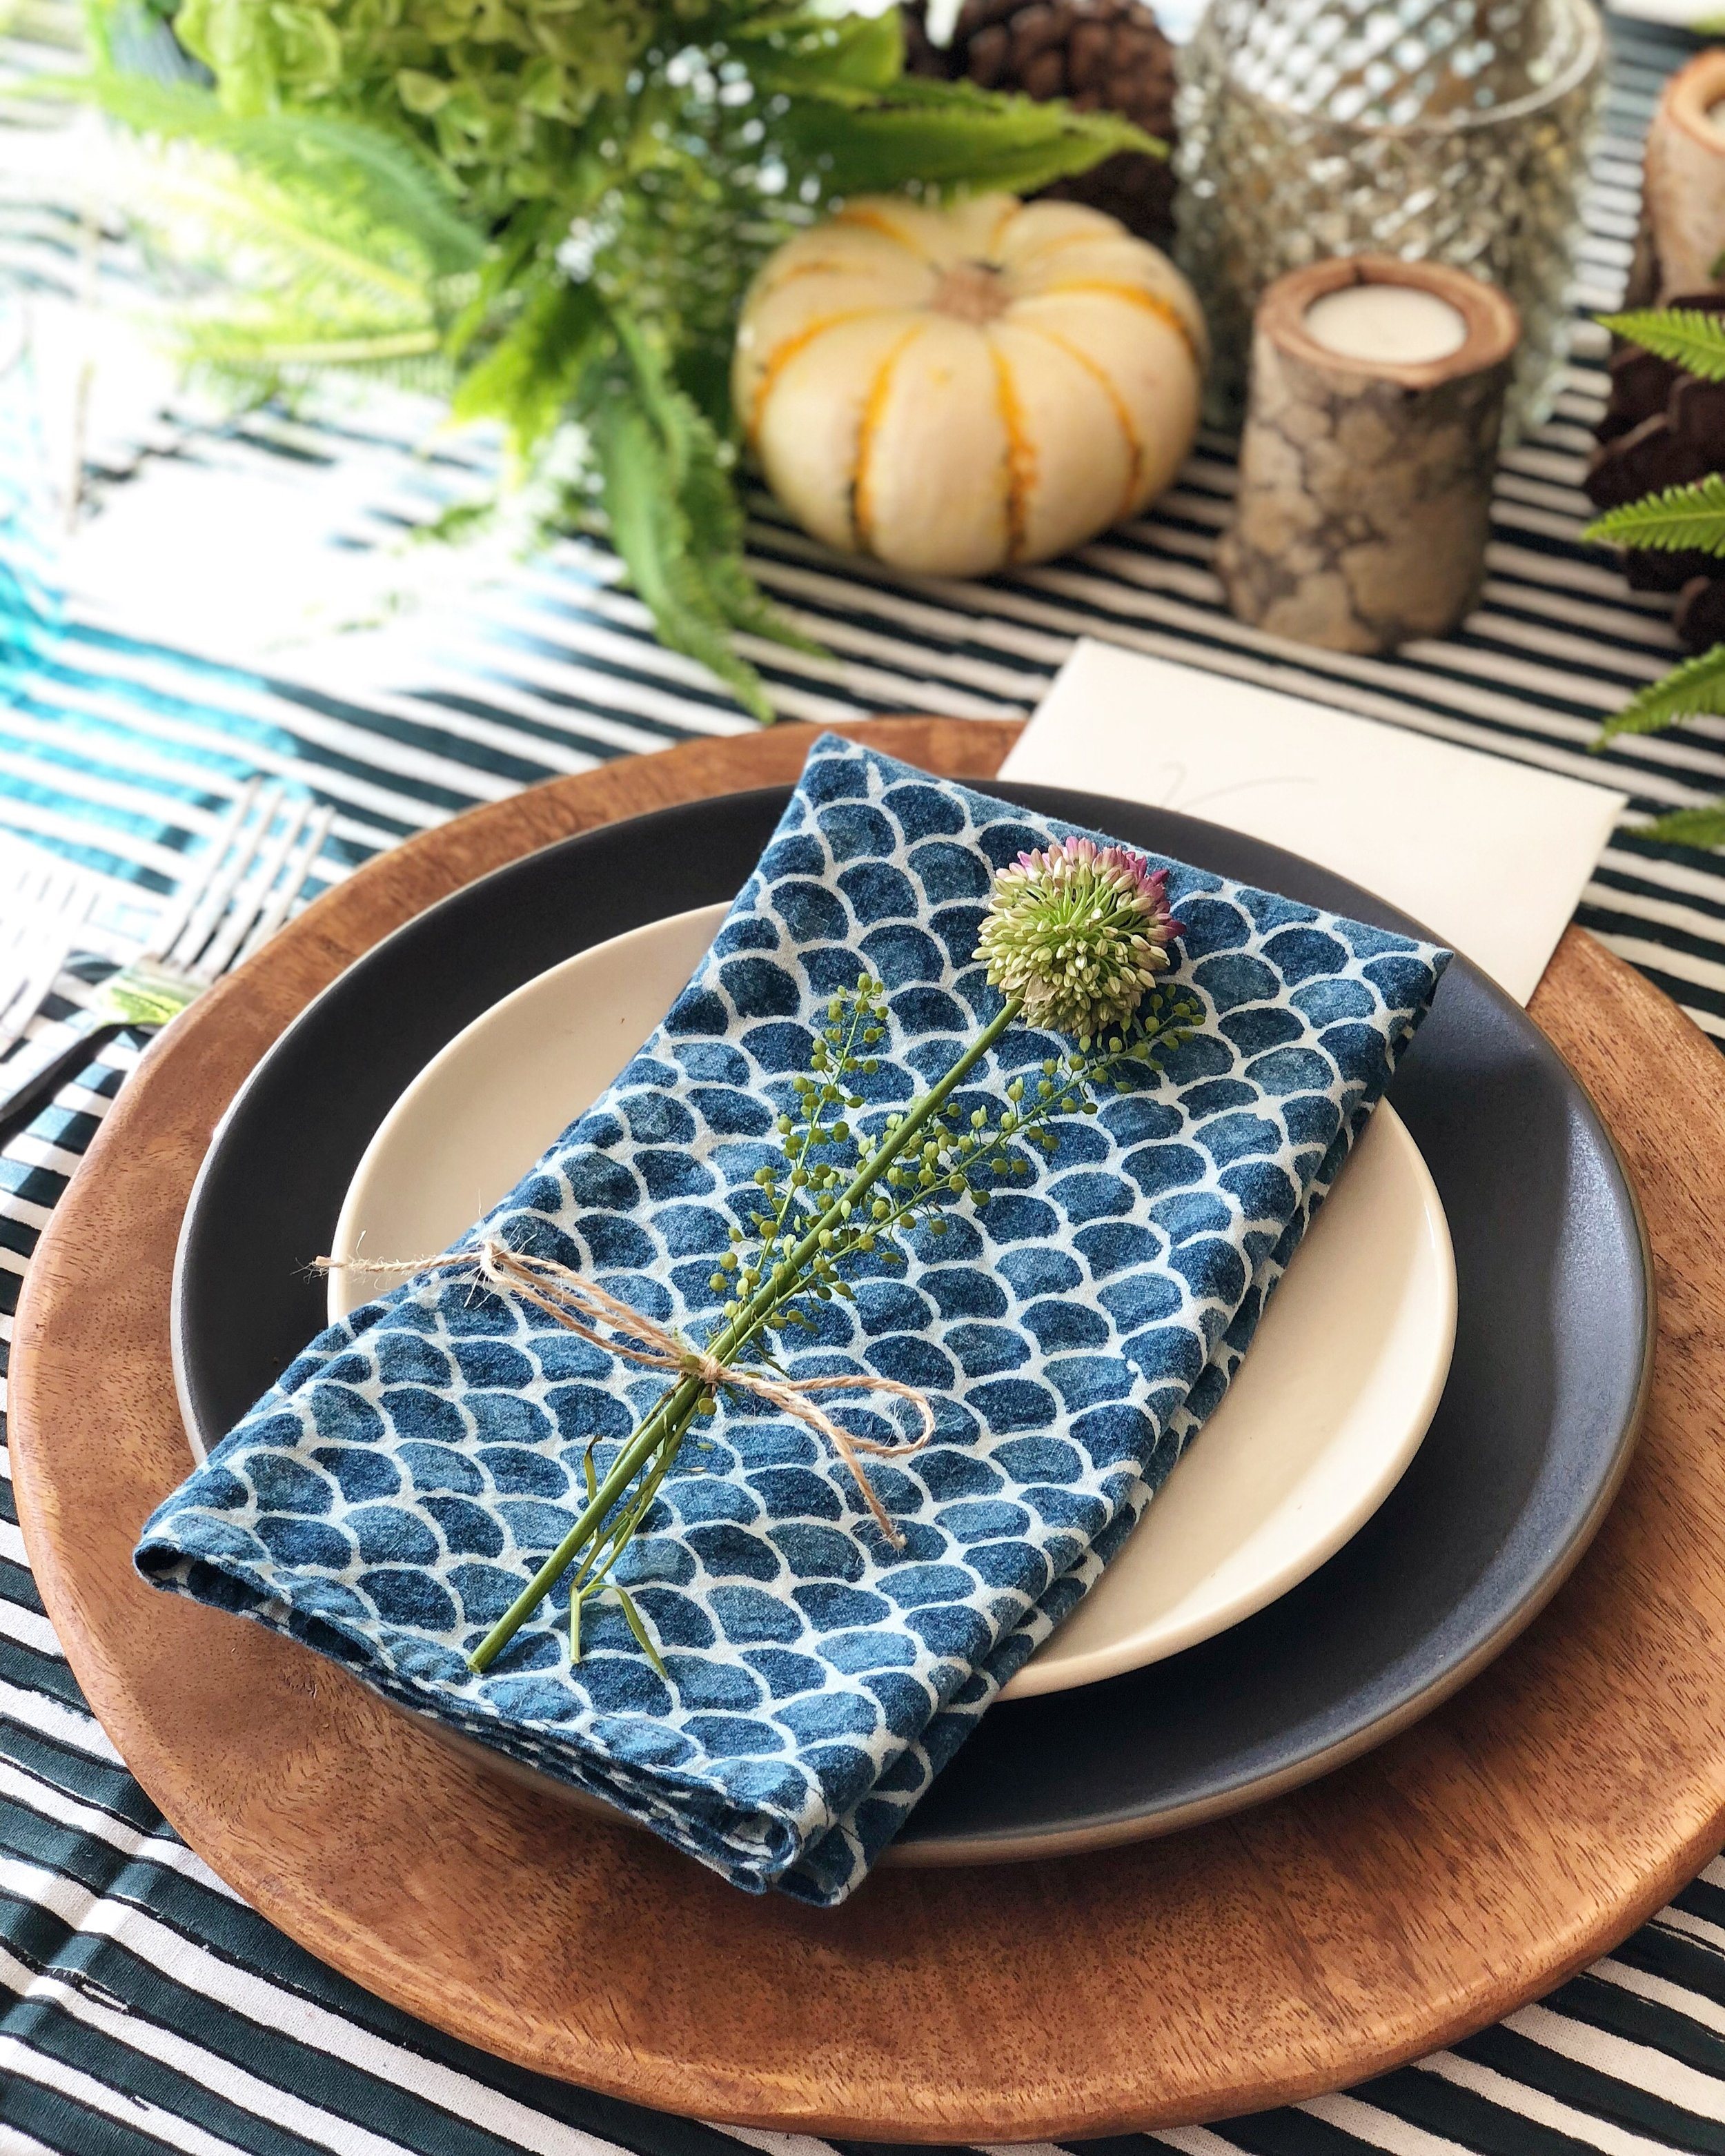 SHOP TABLETOP - Offering some of our favorite items so you can create a beautiful table top for everyday and special occasions